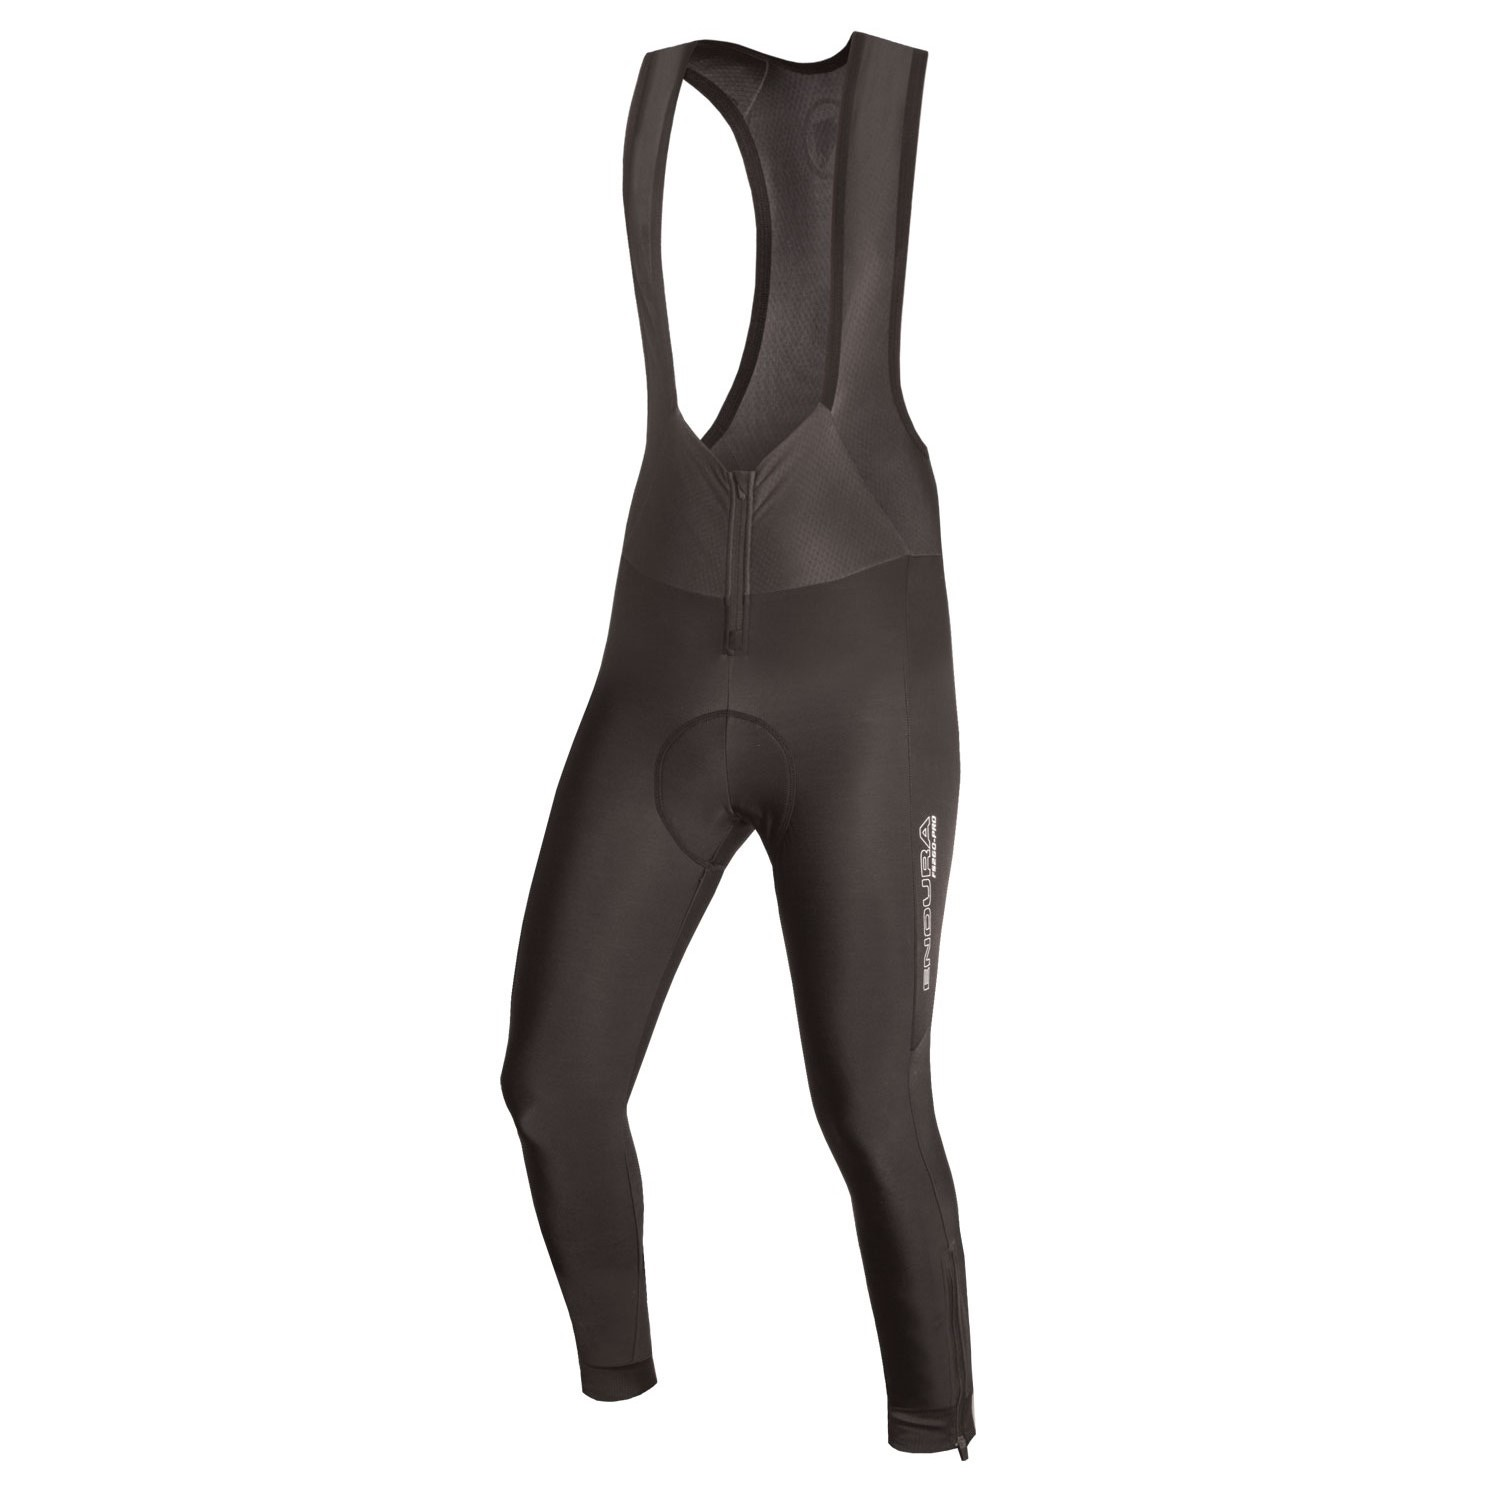 Endura FS260-Pro Thermo Biblong (online offer)